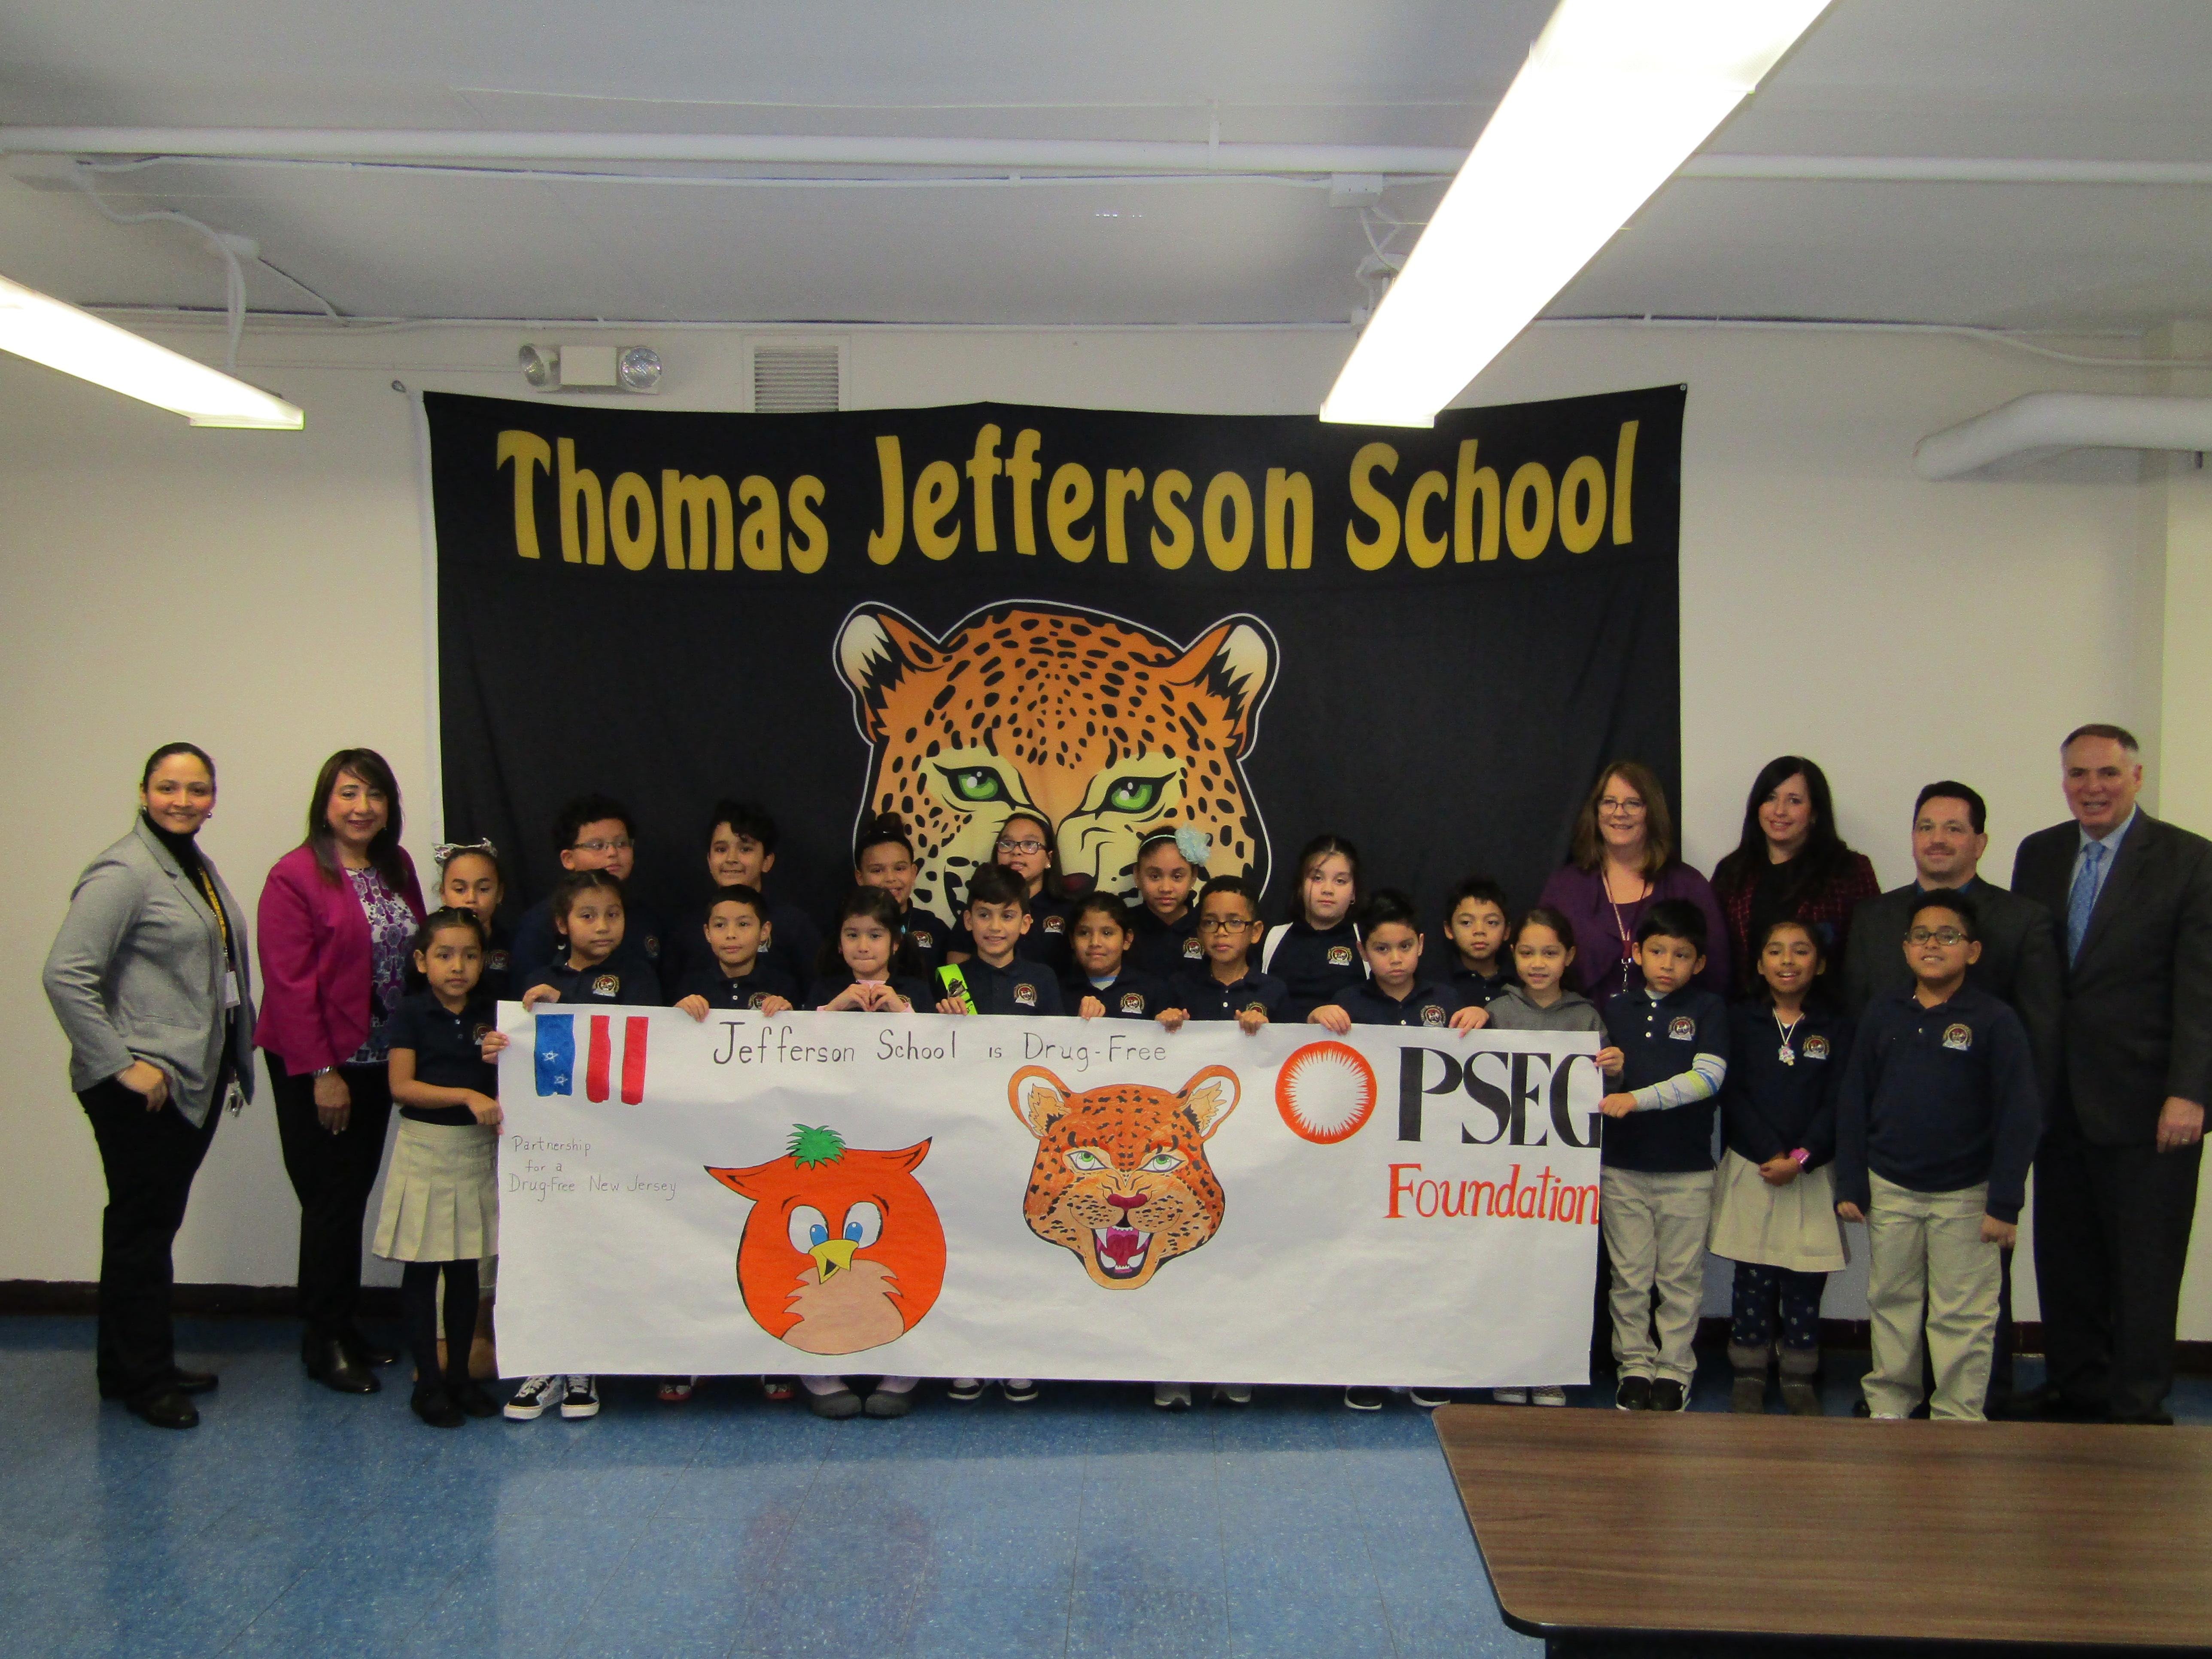 Group photo of students, teachers, Drug Free Representatives and Jefferson Administration